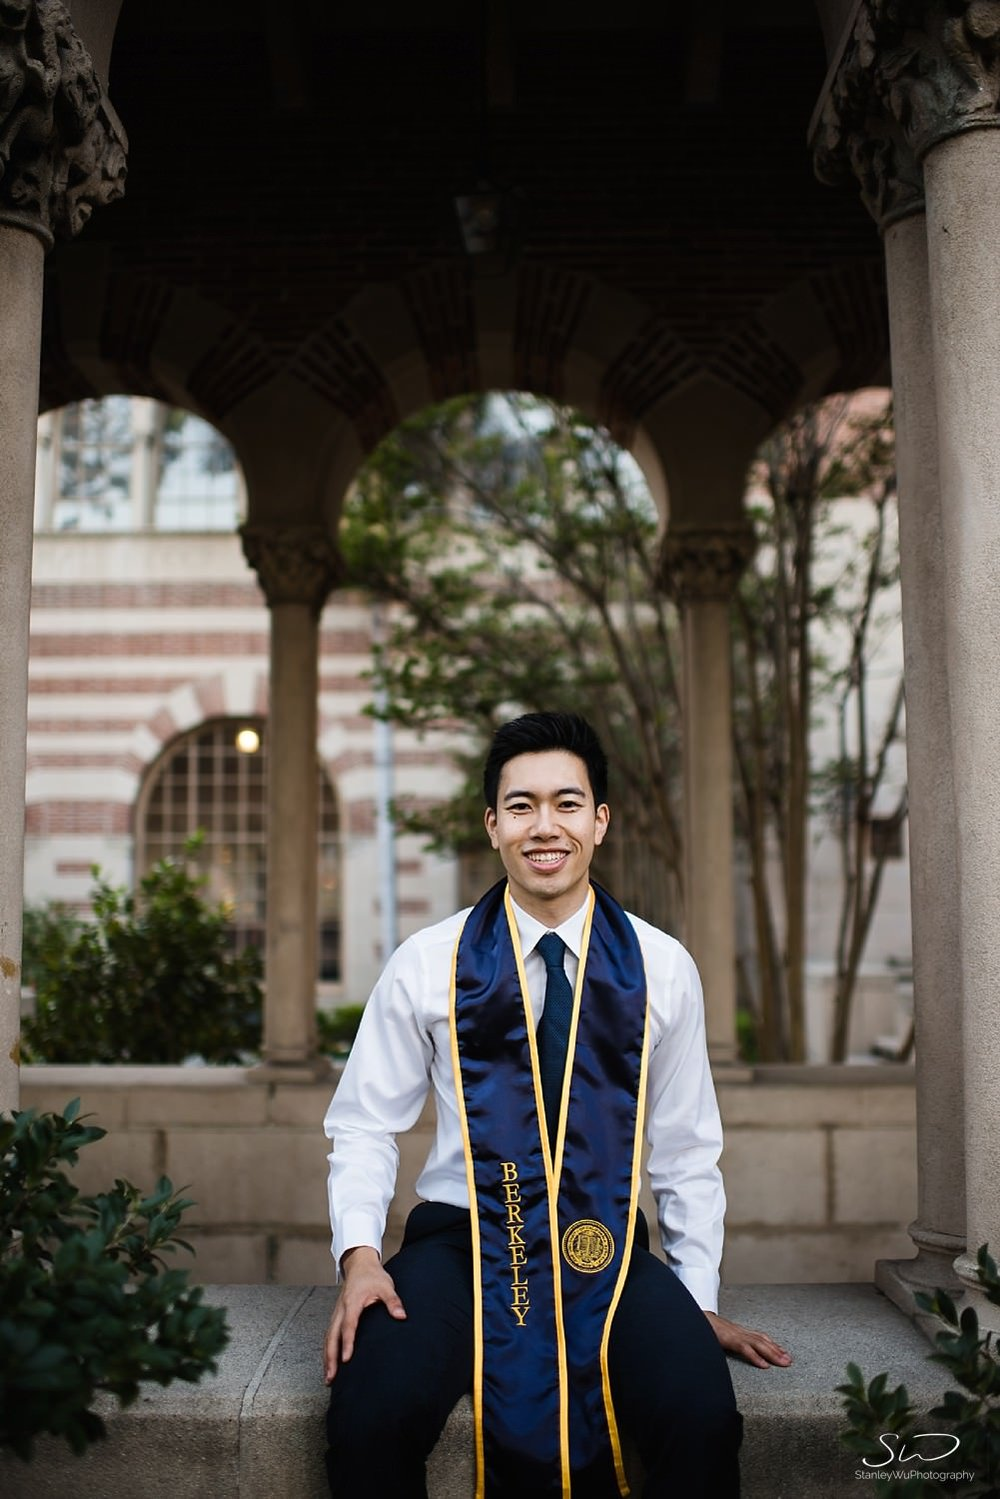 UC Berkeley senior sitting at Mudd Hall | Los Angeles Graduation and Senior Portrait Photographer